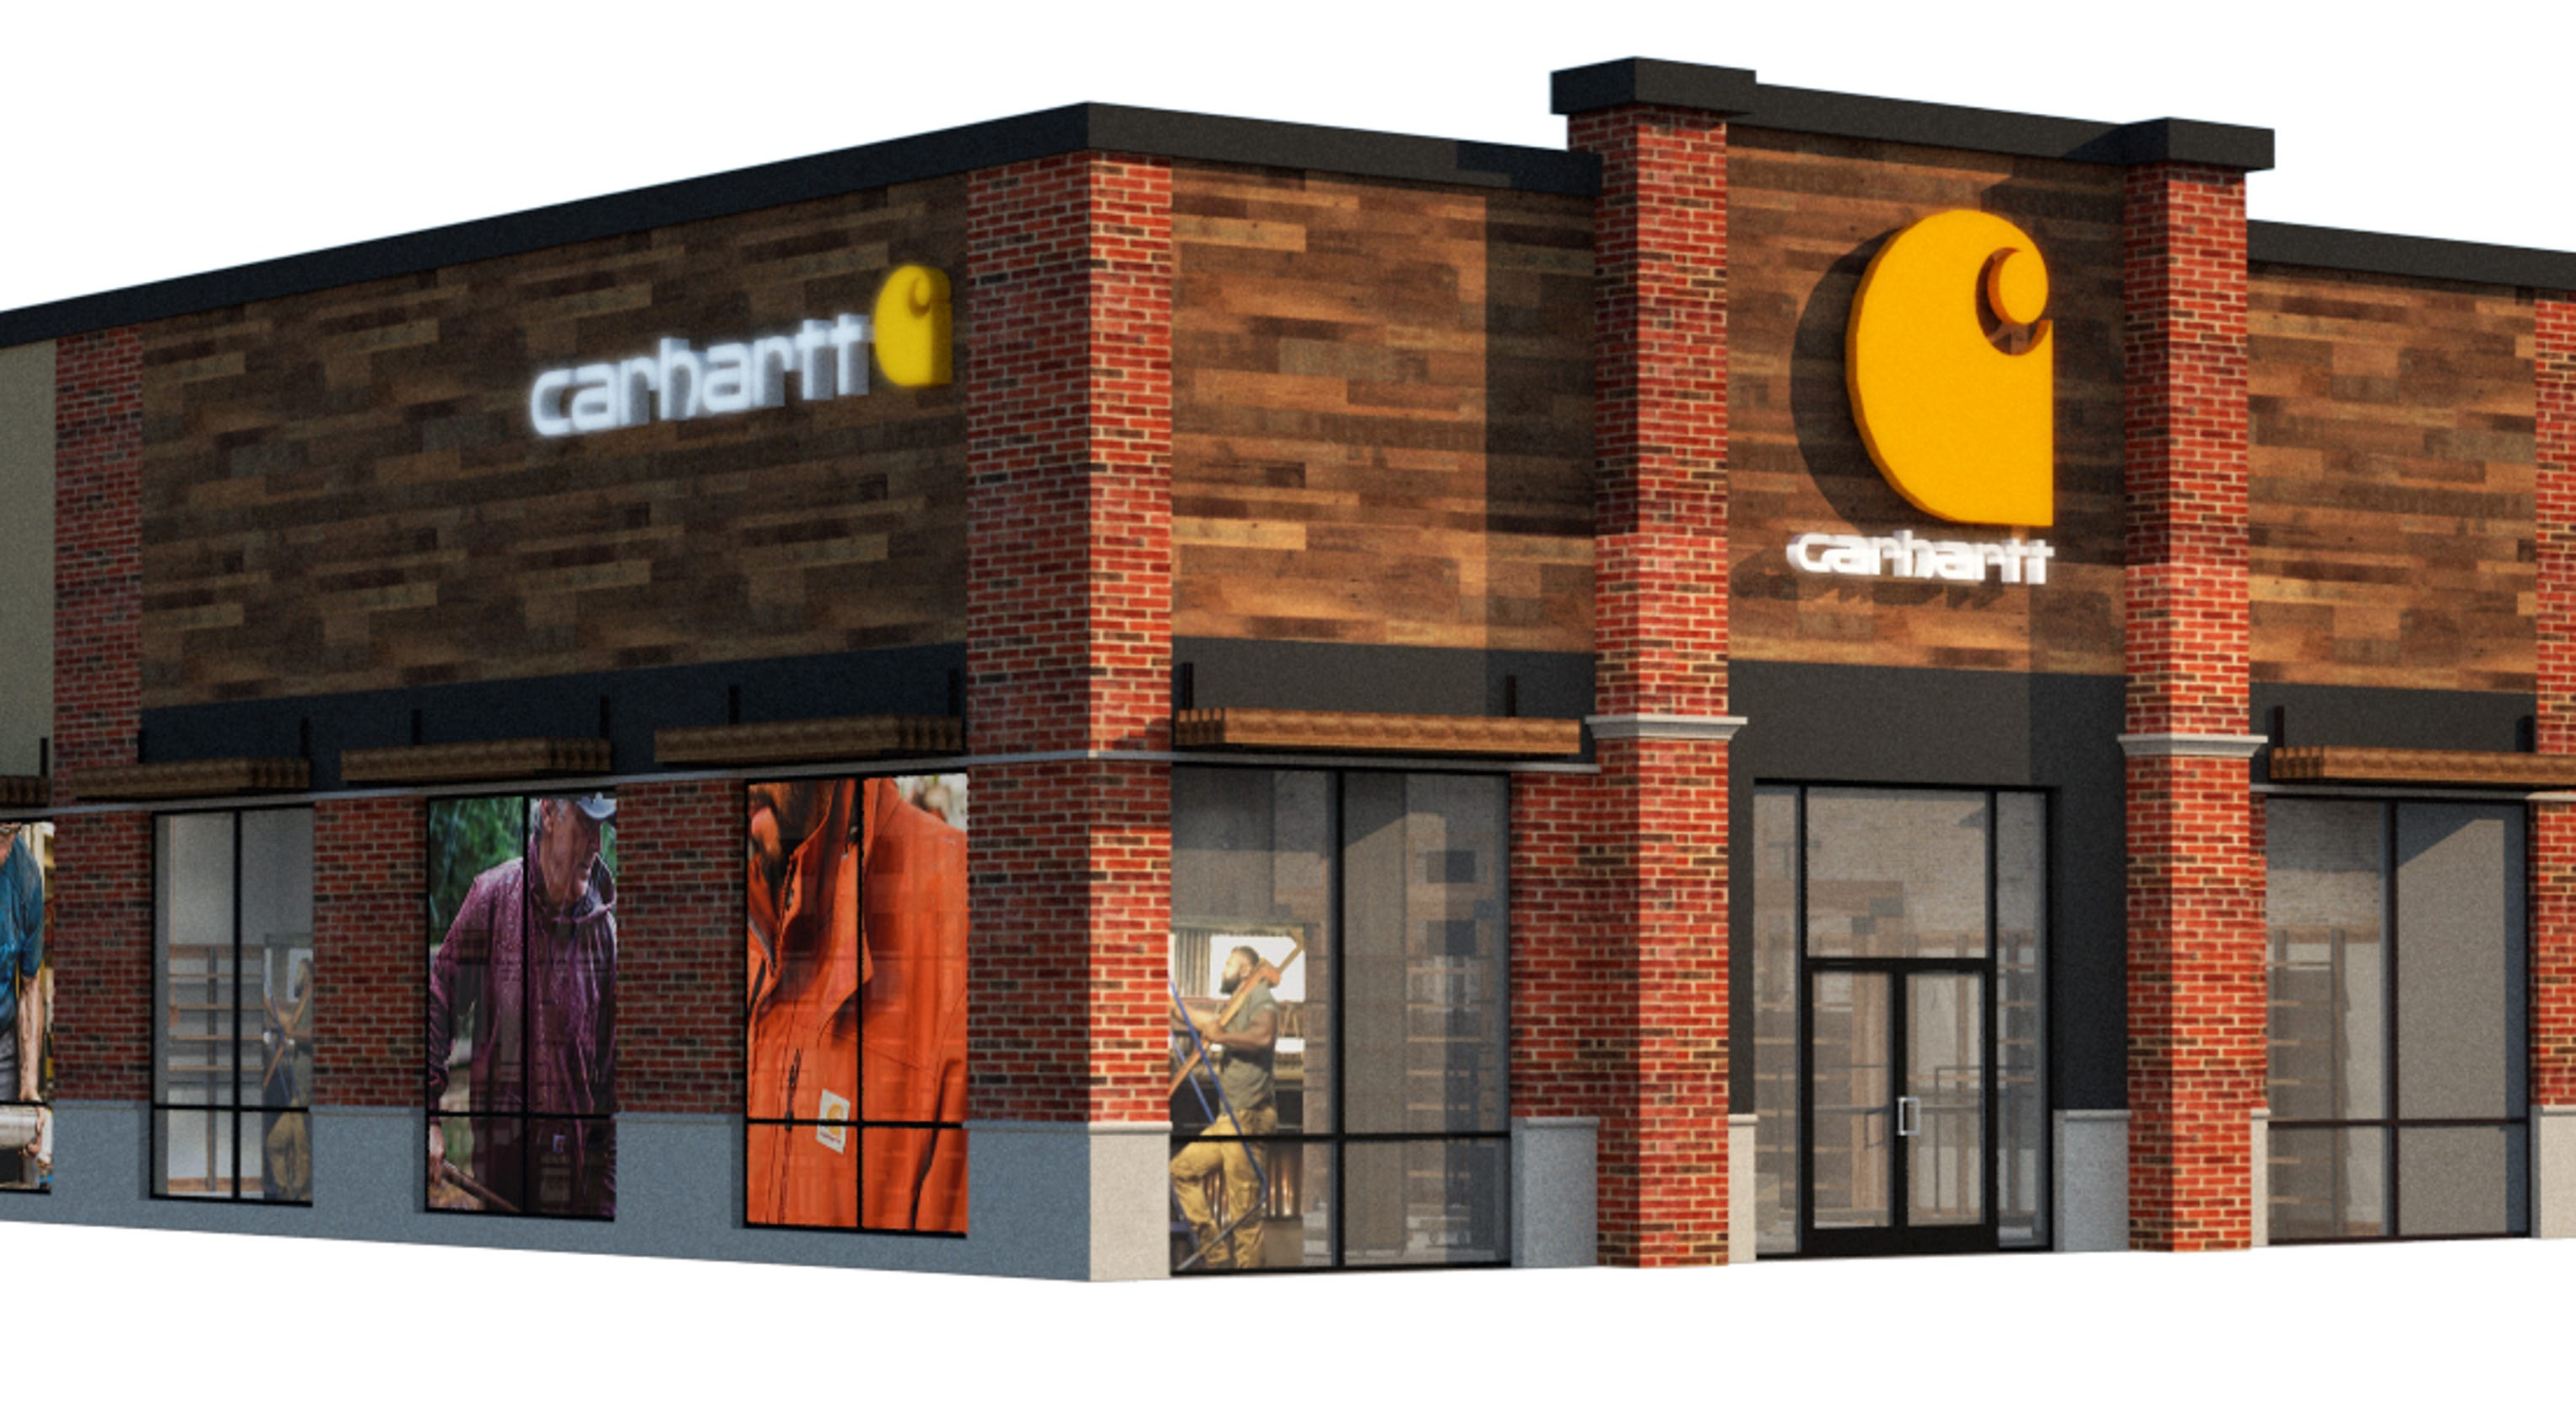 7b050ce7379 Carhartt on Route 70 in Cherry Hill marks retailer's expansion to NJ